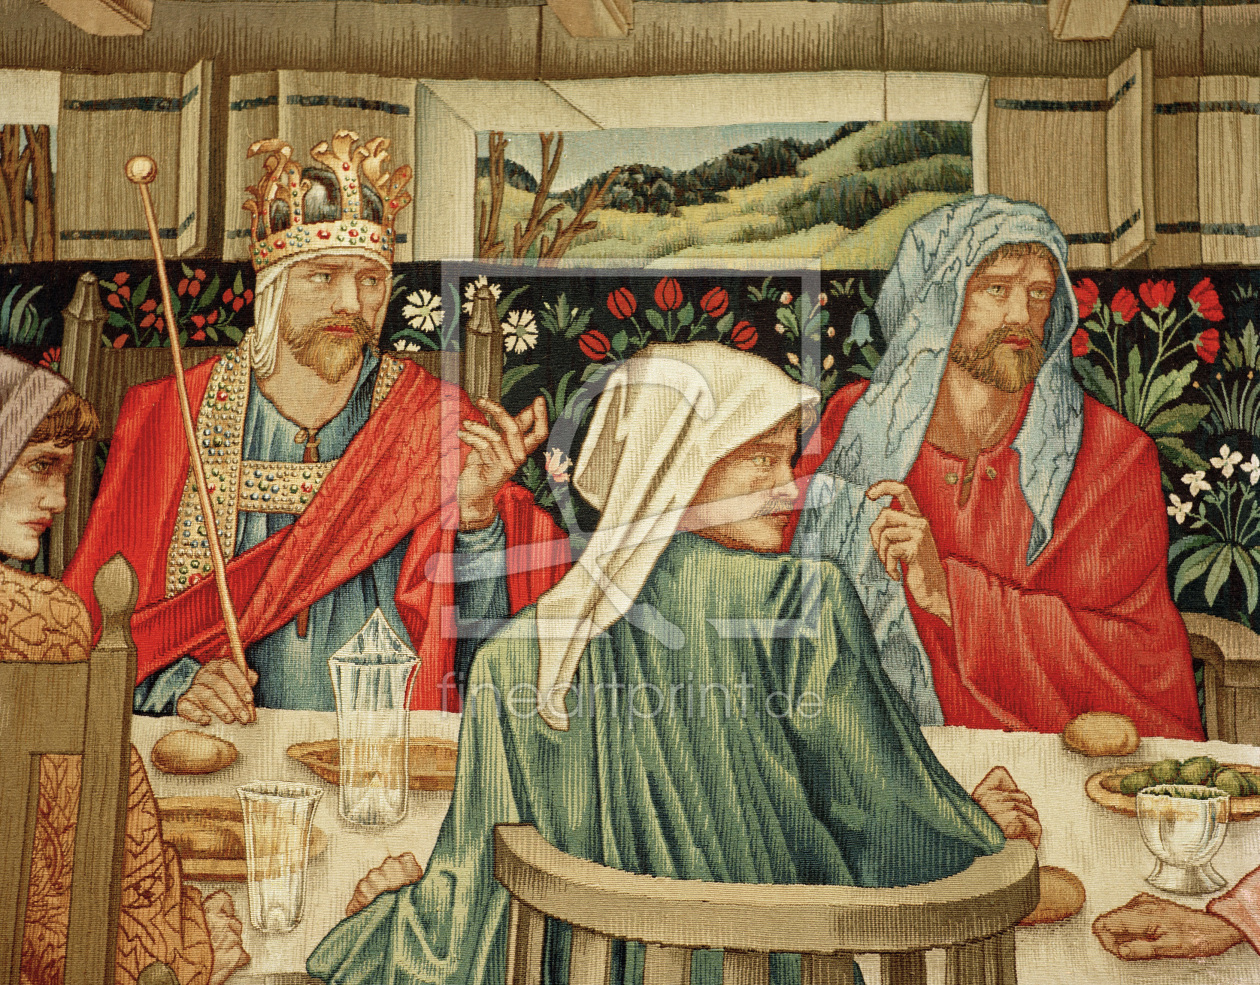 Bild-Nr.: 30009236 King Arthur / Round Table / Burne-Jones erstellt von Burne-Jones, Edward